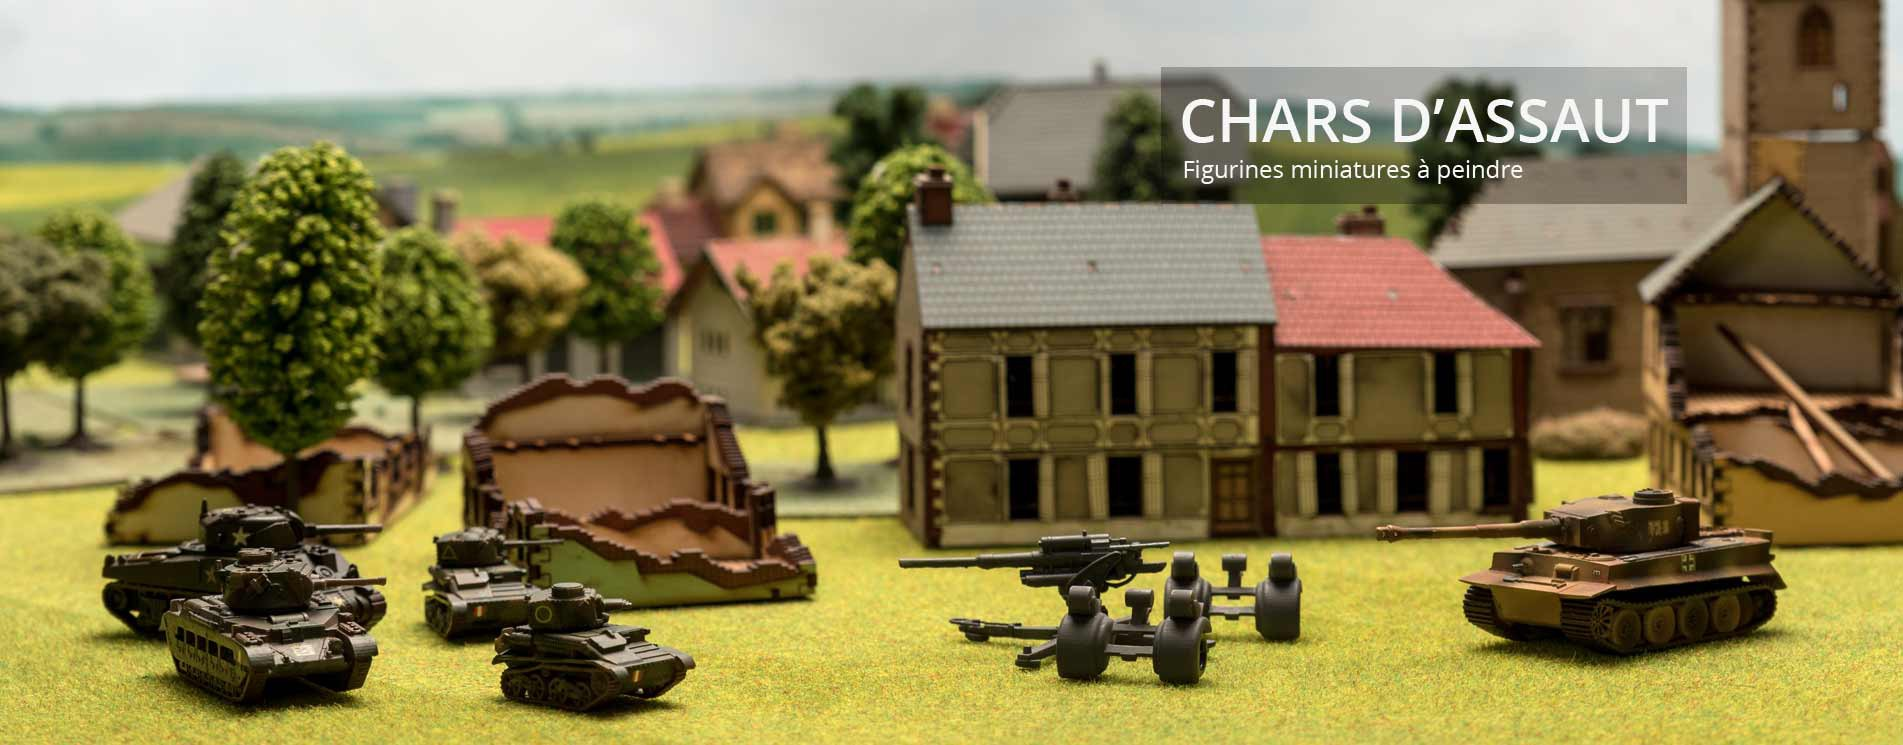 Reproduction de Chars d'assaut miniatures sur un diorama